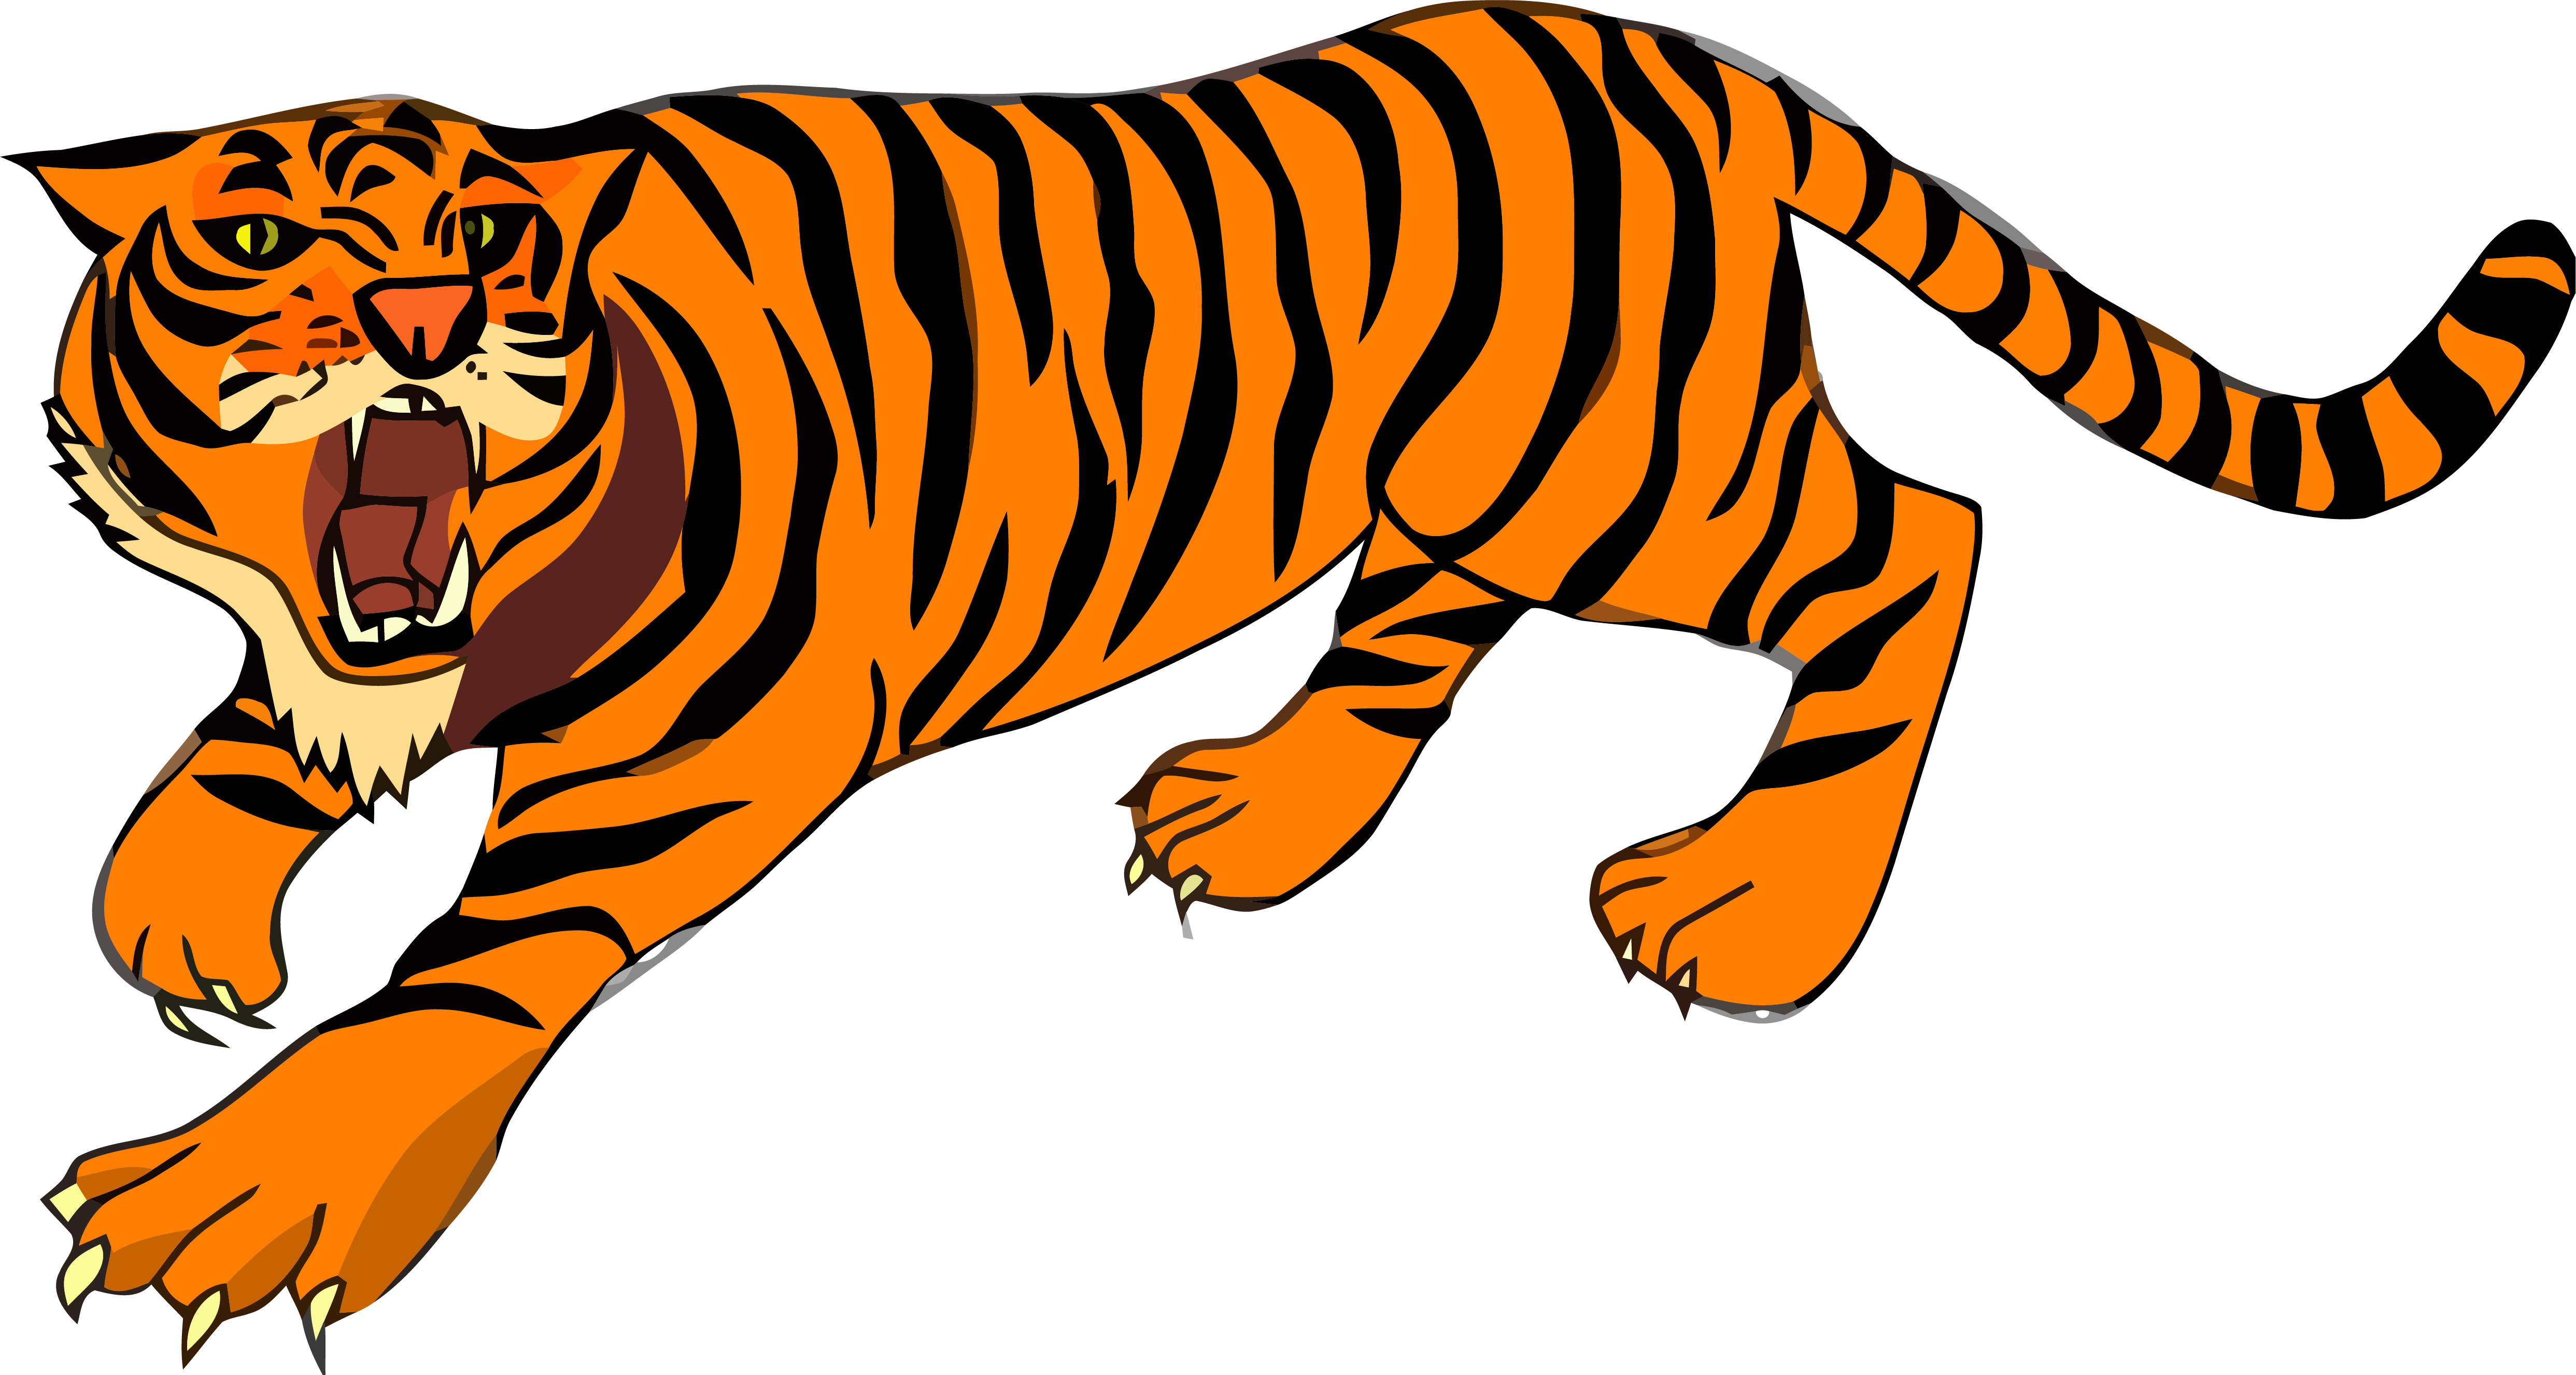 Attacking cat clipart clipart freeuse download Wild Attack Tigger Clipart Png Image Download | Clipartly.com clipart freeuse download